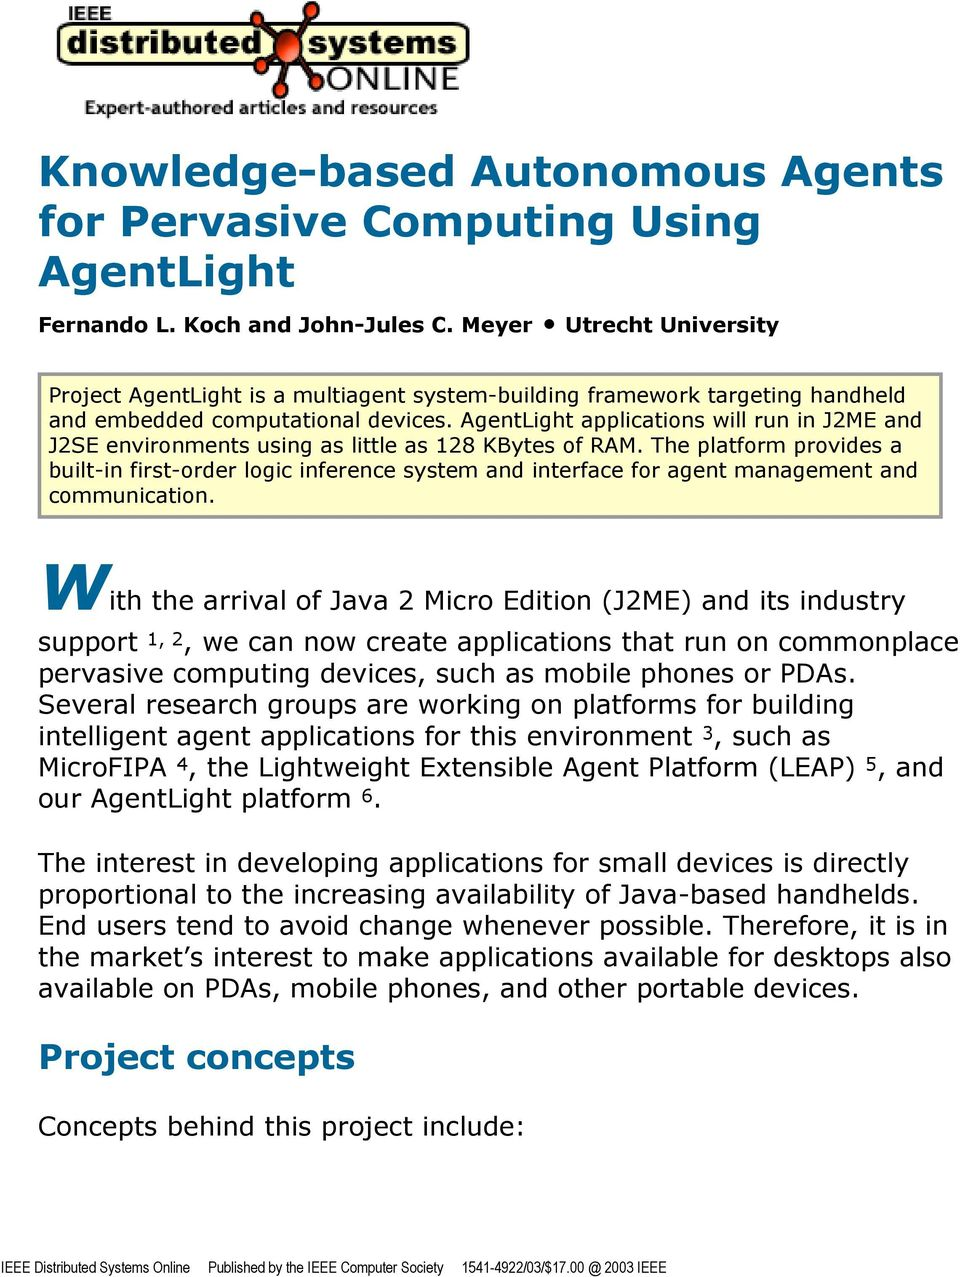 AgentLight appications wi run in J2ME and J2SE environments using as itte as 128 KBytes of RAM.